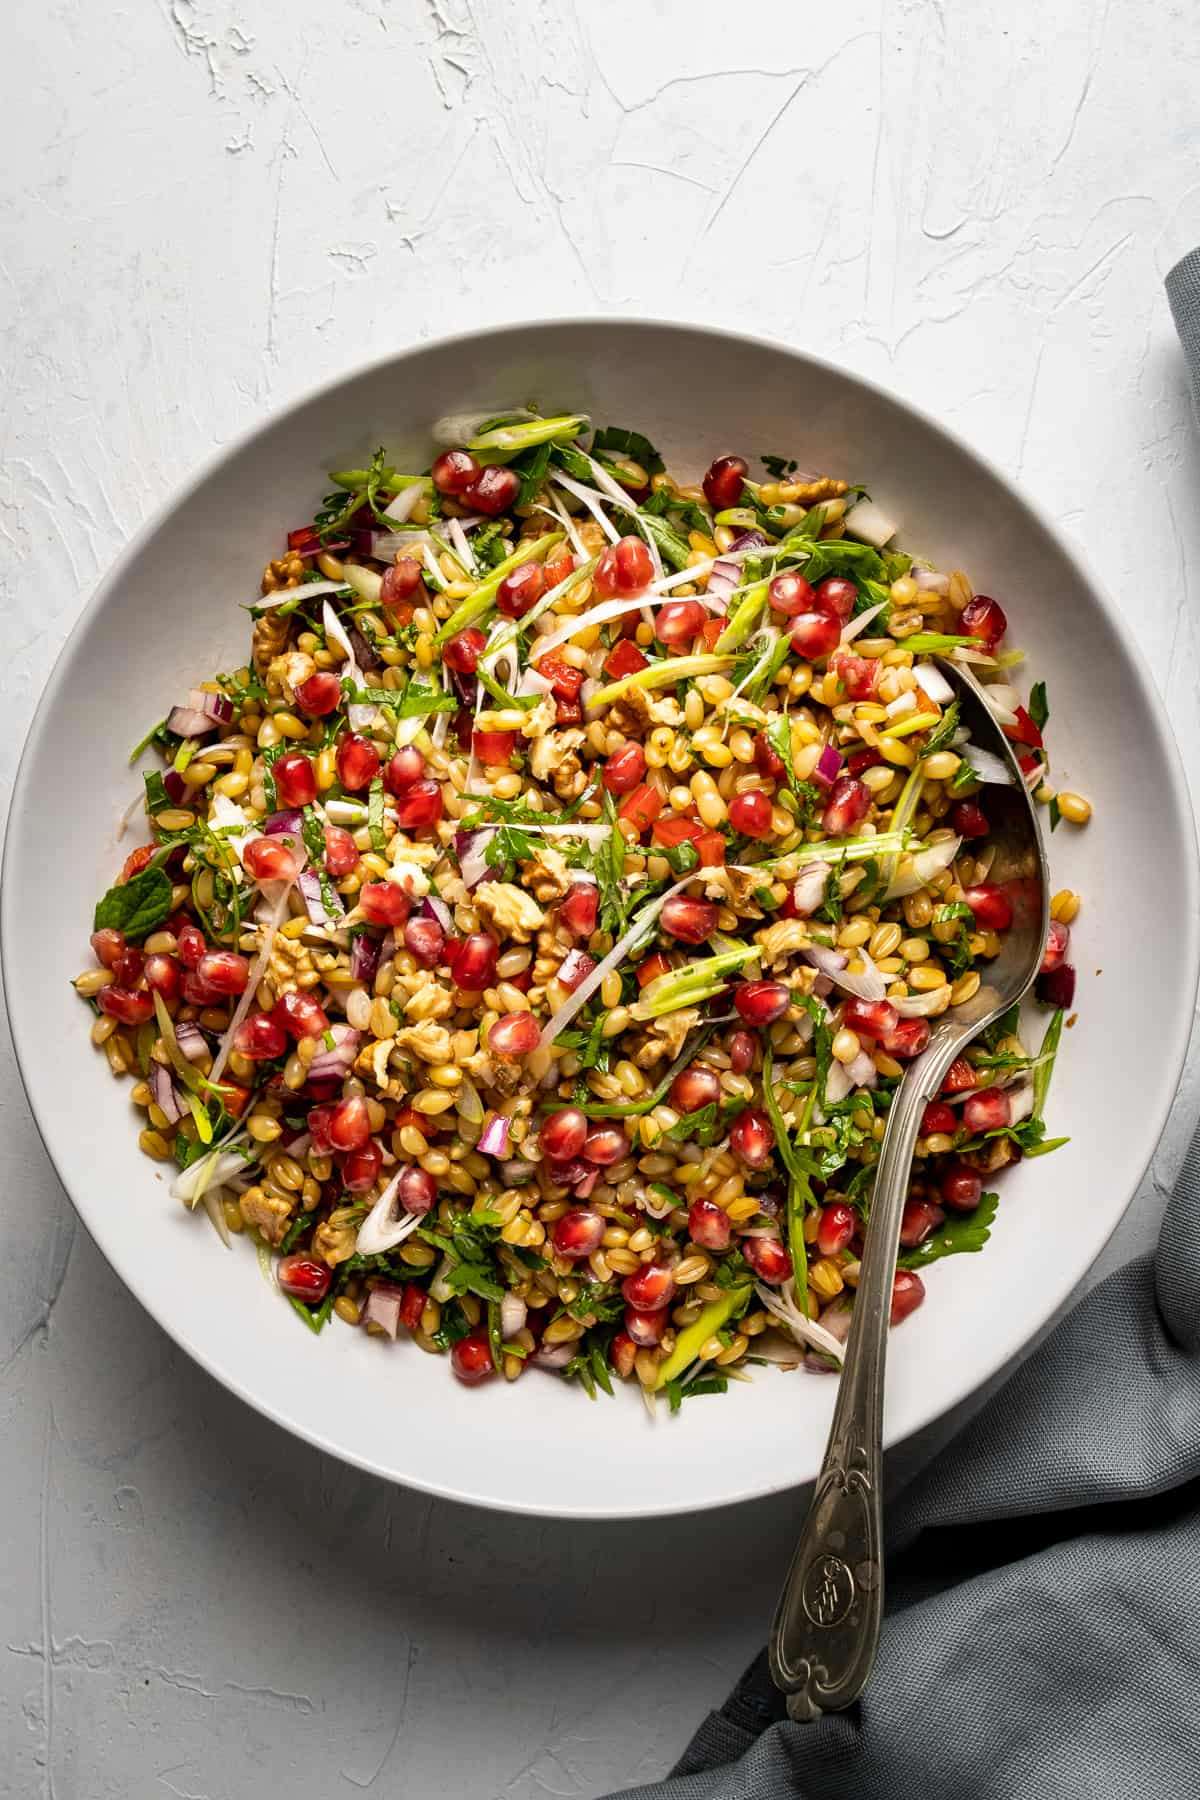 Wheat berries, herbs, onions and pomegranate arils combined in a white bowl and a spoon in it.